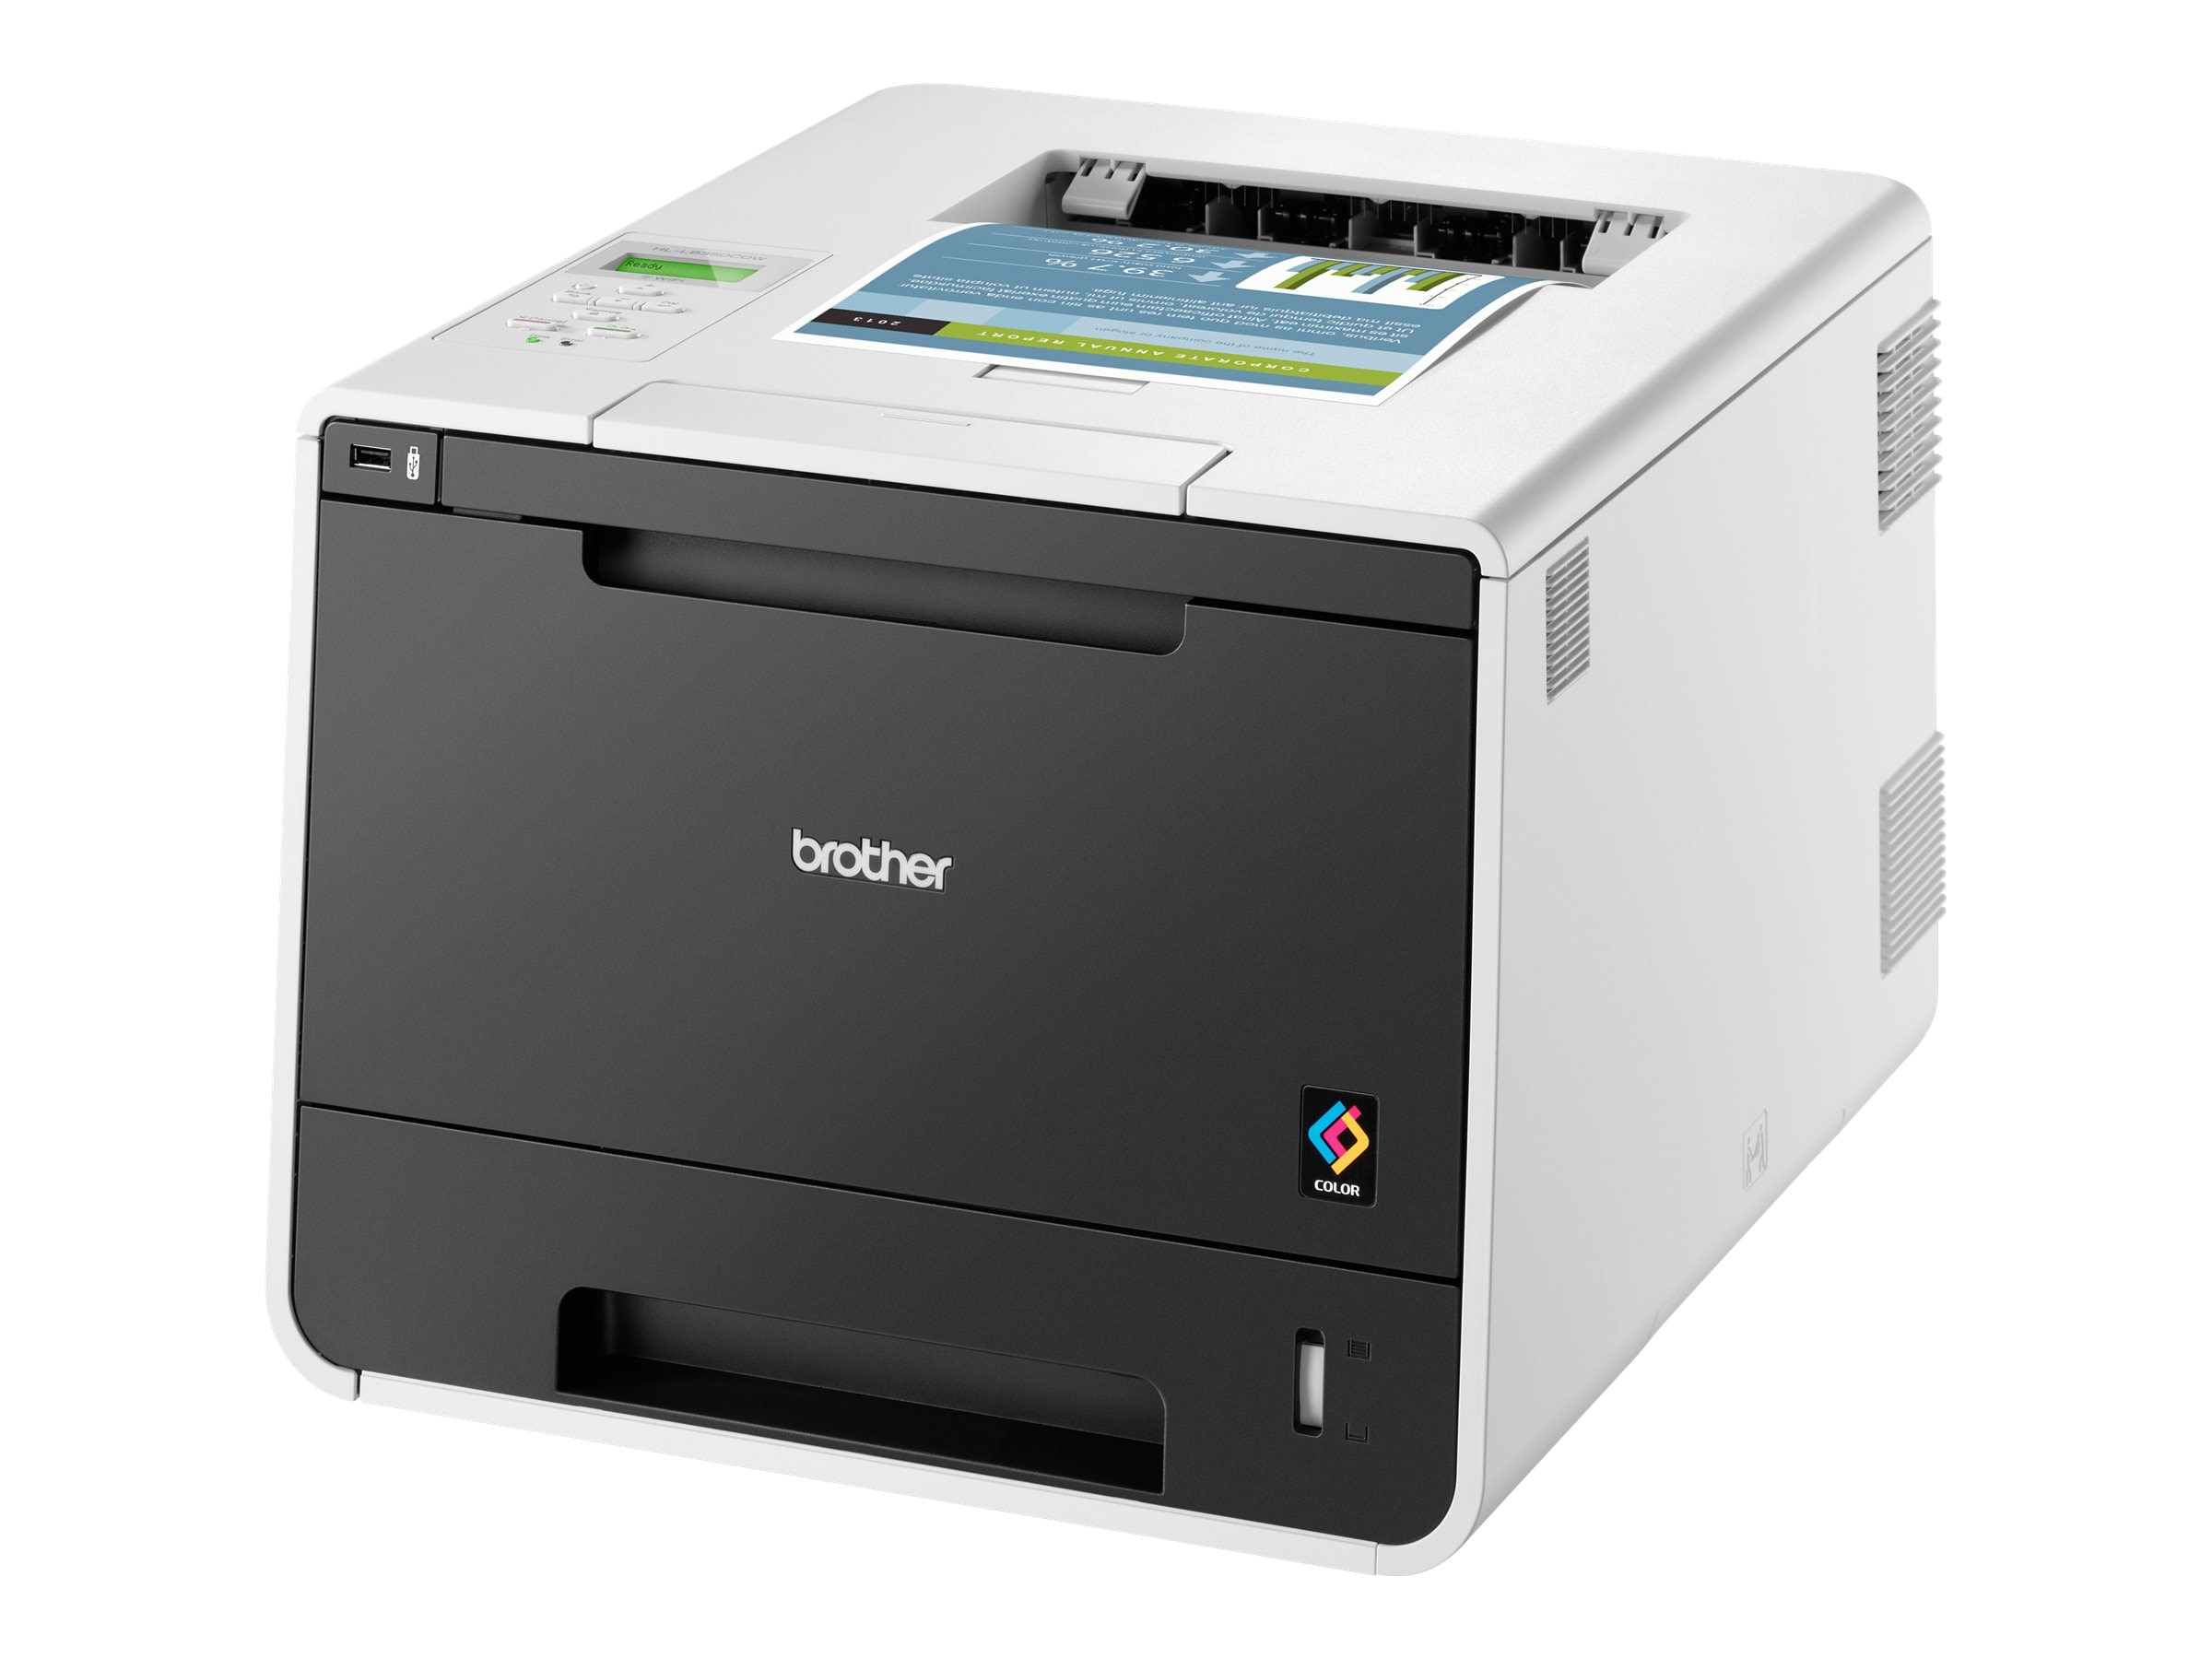 Brother HL-L8350CDW Color Laser Printer, HL-L8350CDW, 17039260, Printers - Laser & LED (color)